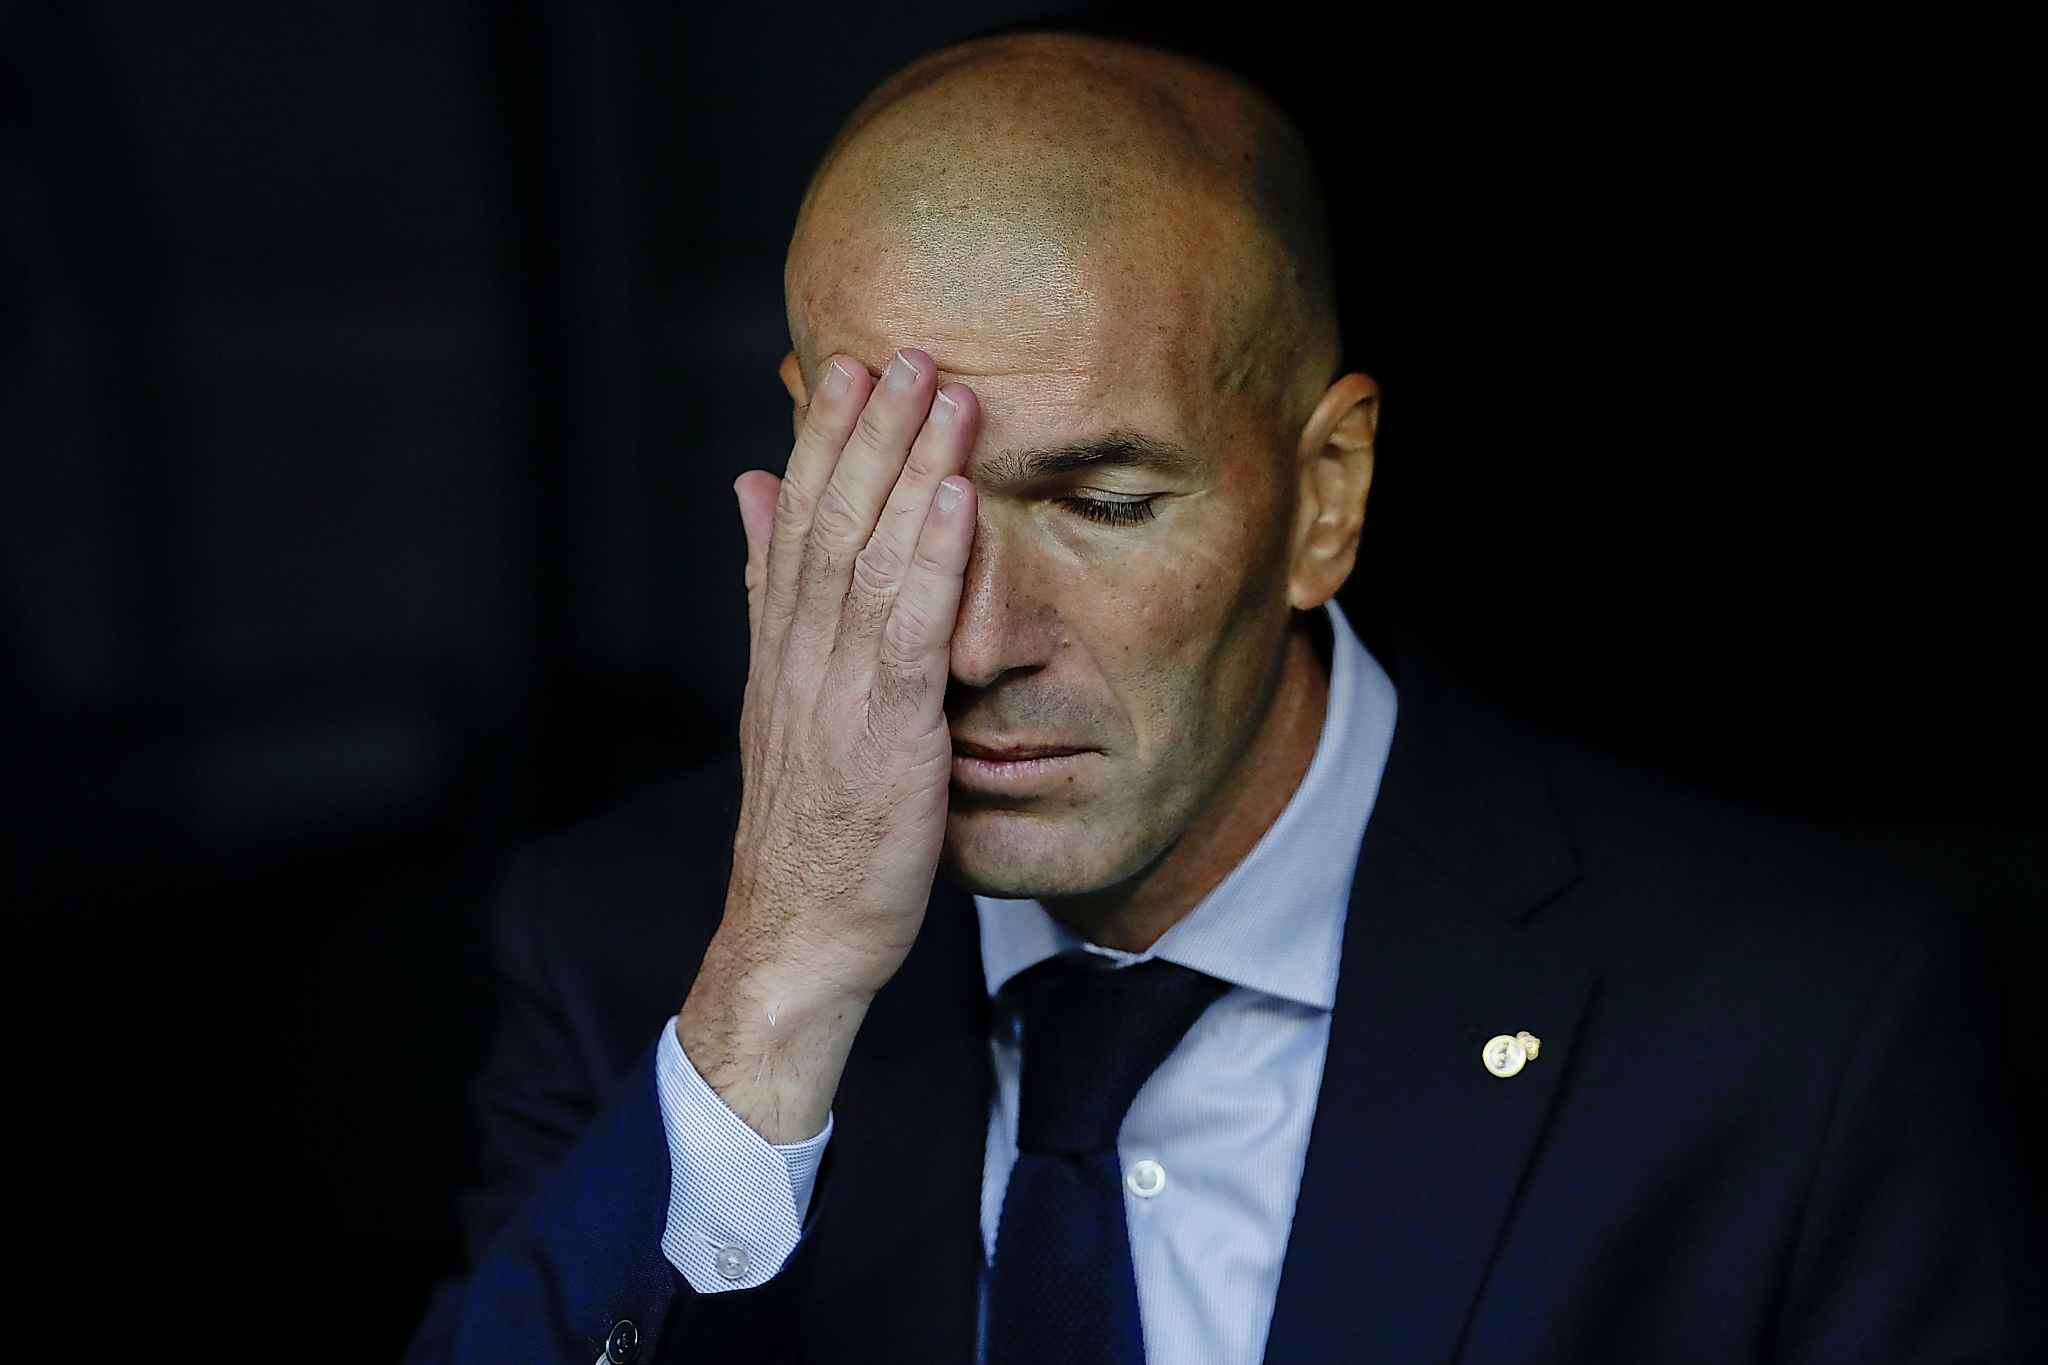 Try to stop touching your face, unless you are Real Madrid's head coach Zinedine Zidane and can't help yourself. (Manu Fernandez / The Associated Press files)